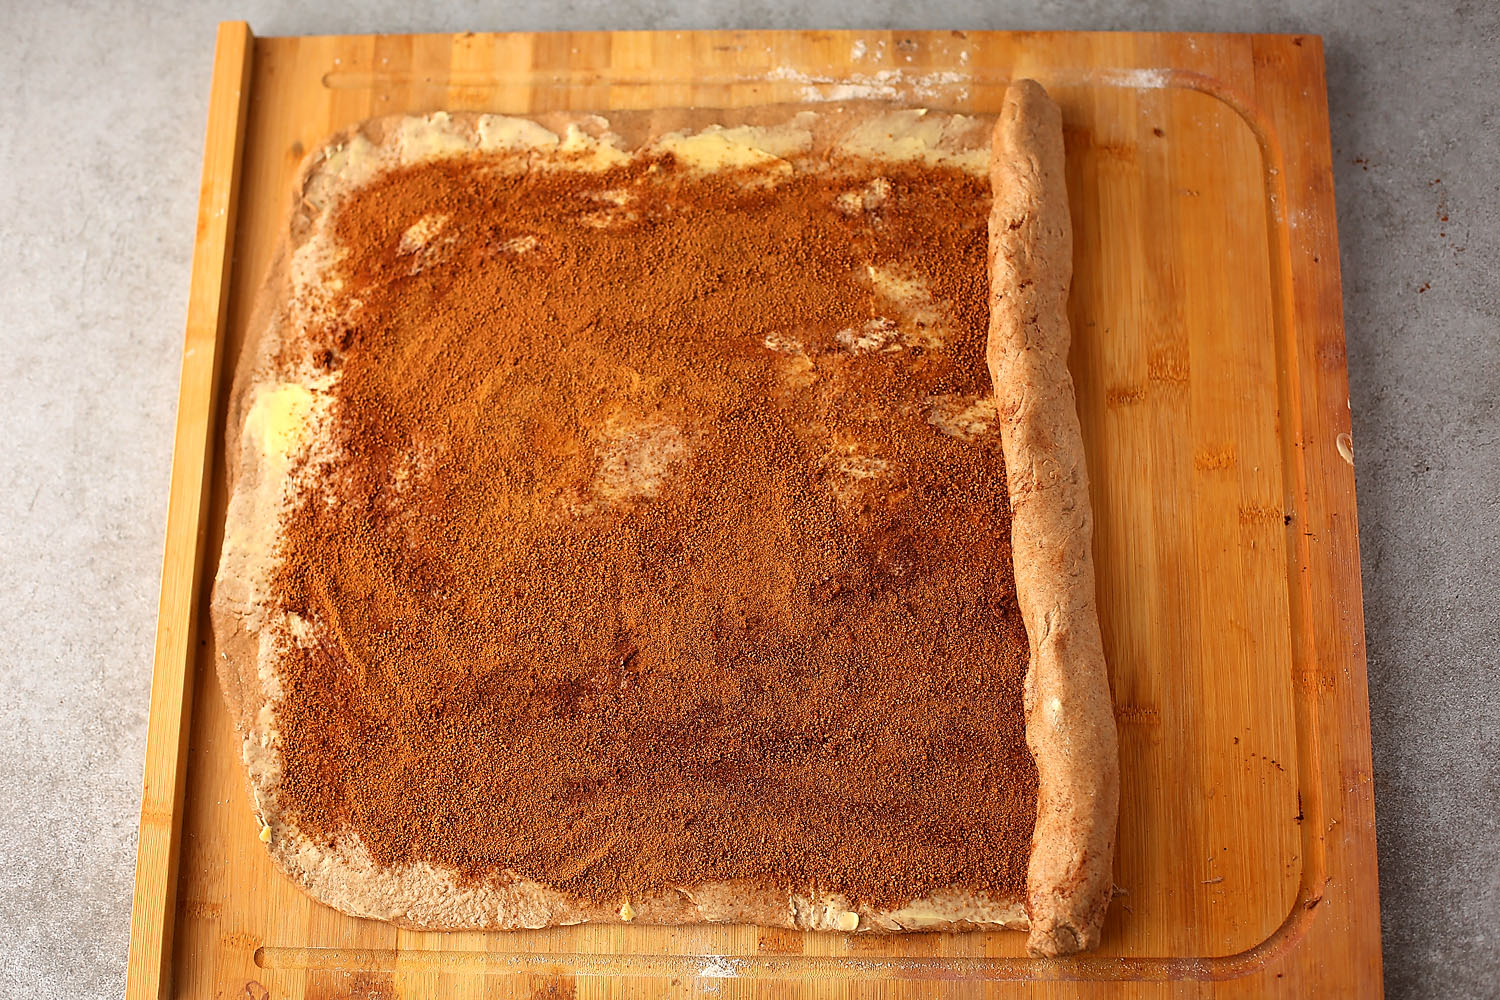 rolled dough with cinnamon mixture on top